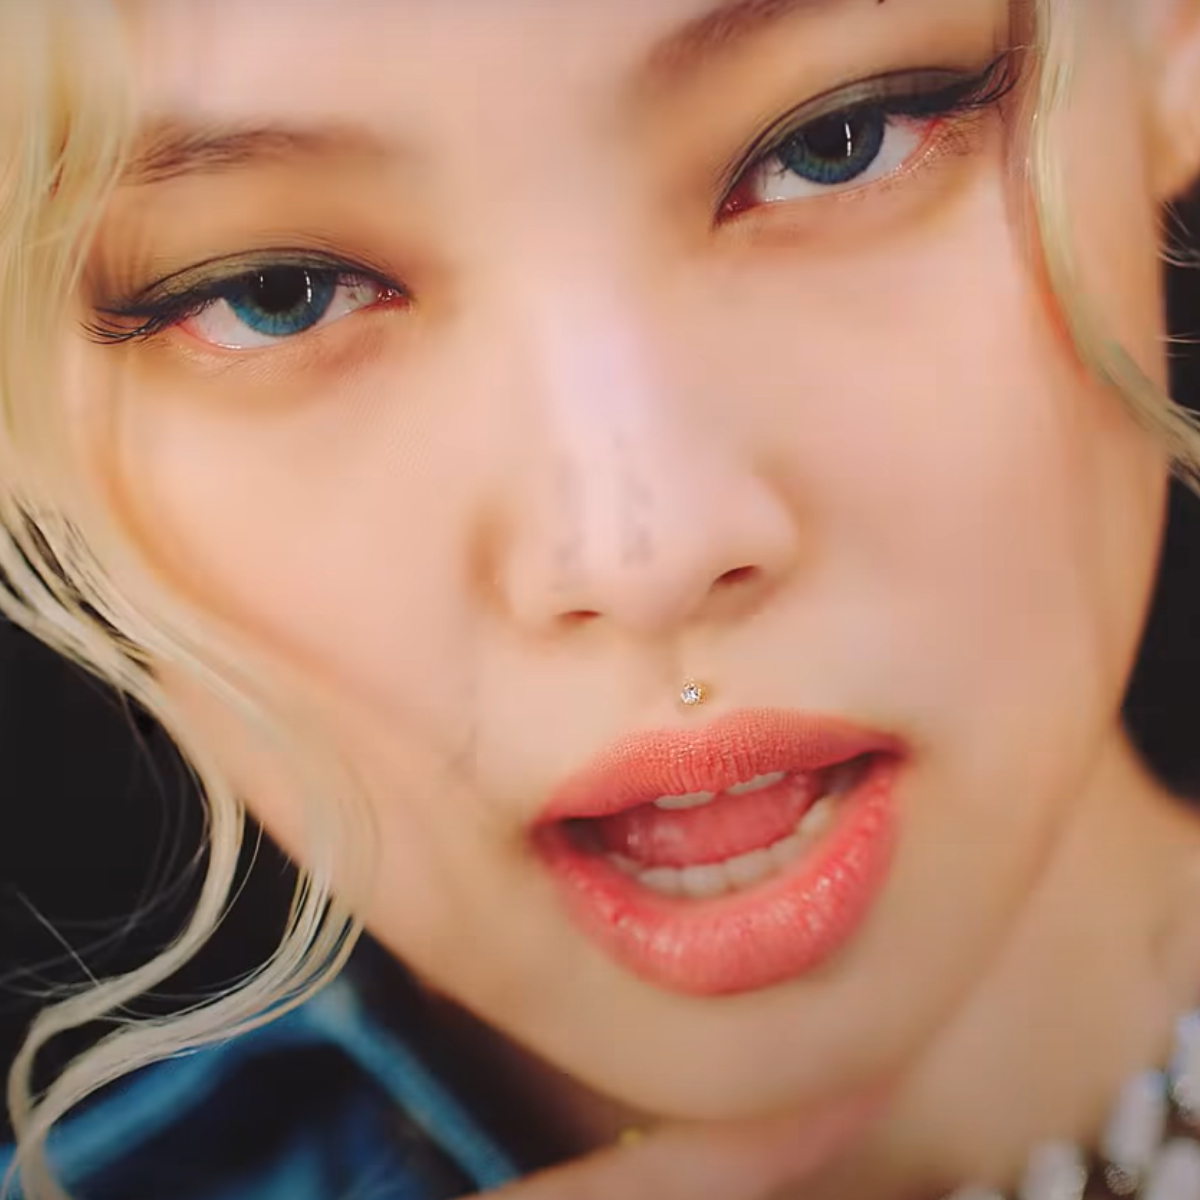 Blackpink Jennie Rose Lisa Jisoo S Dramatic Visuals Take Center Stage In How You Like That Mv Teaser Pinkvilla